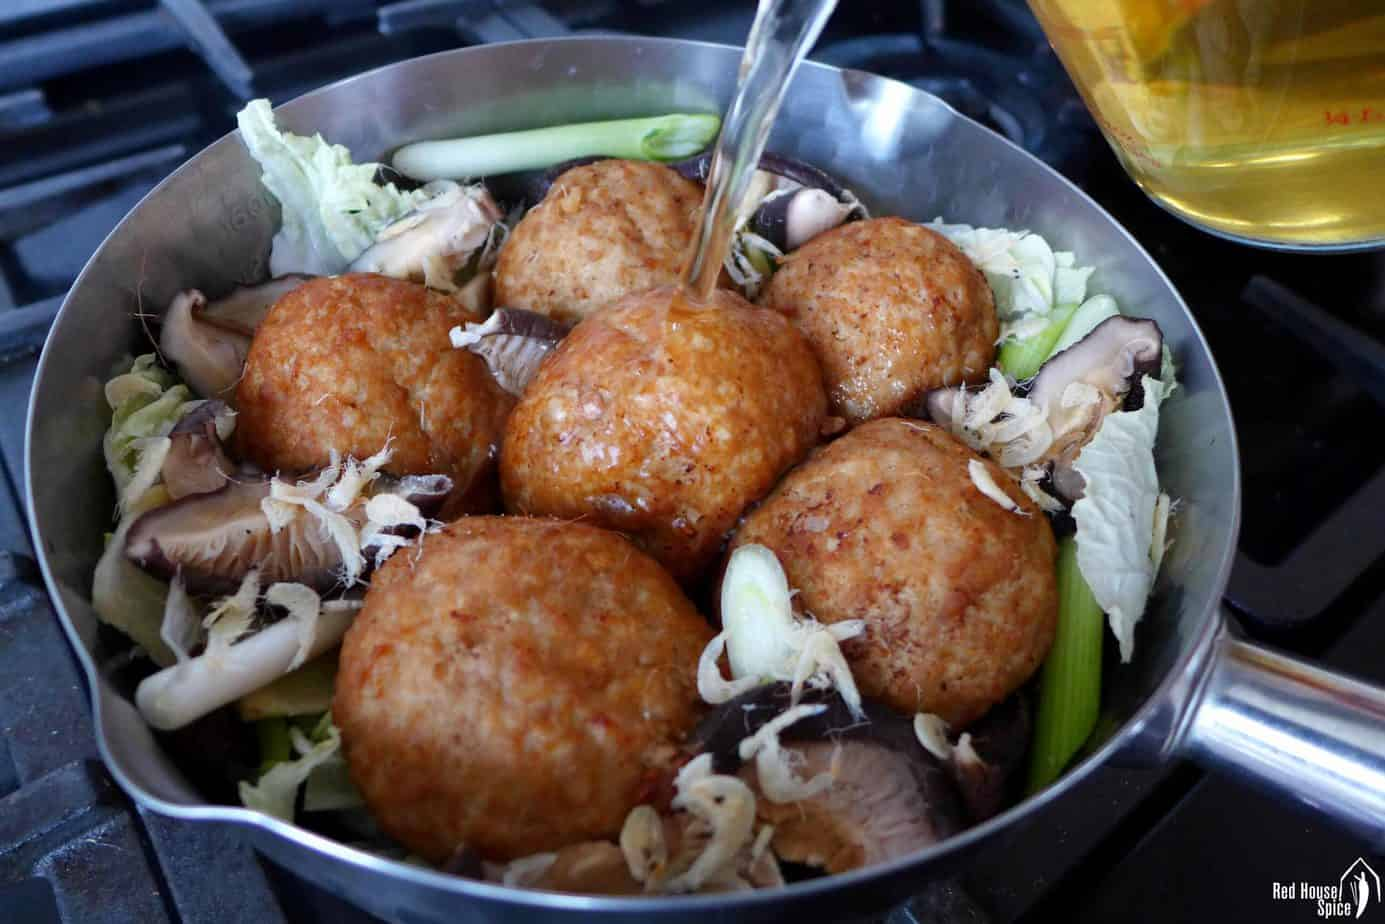 Cooking pork meatballs with cabbage and musroom